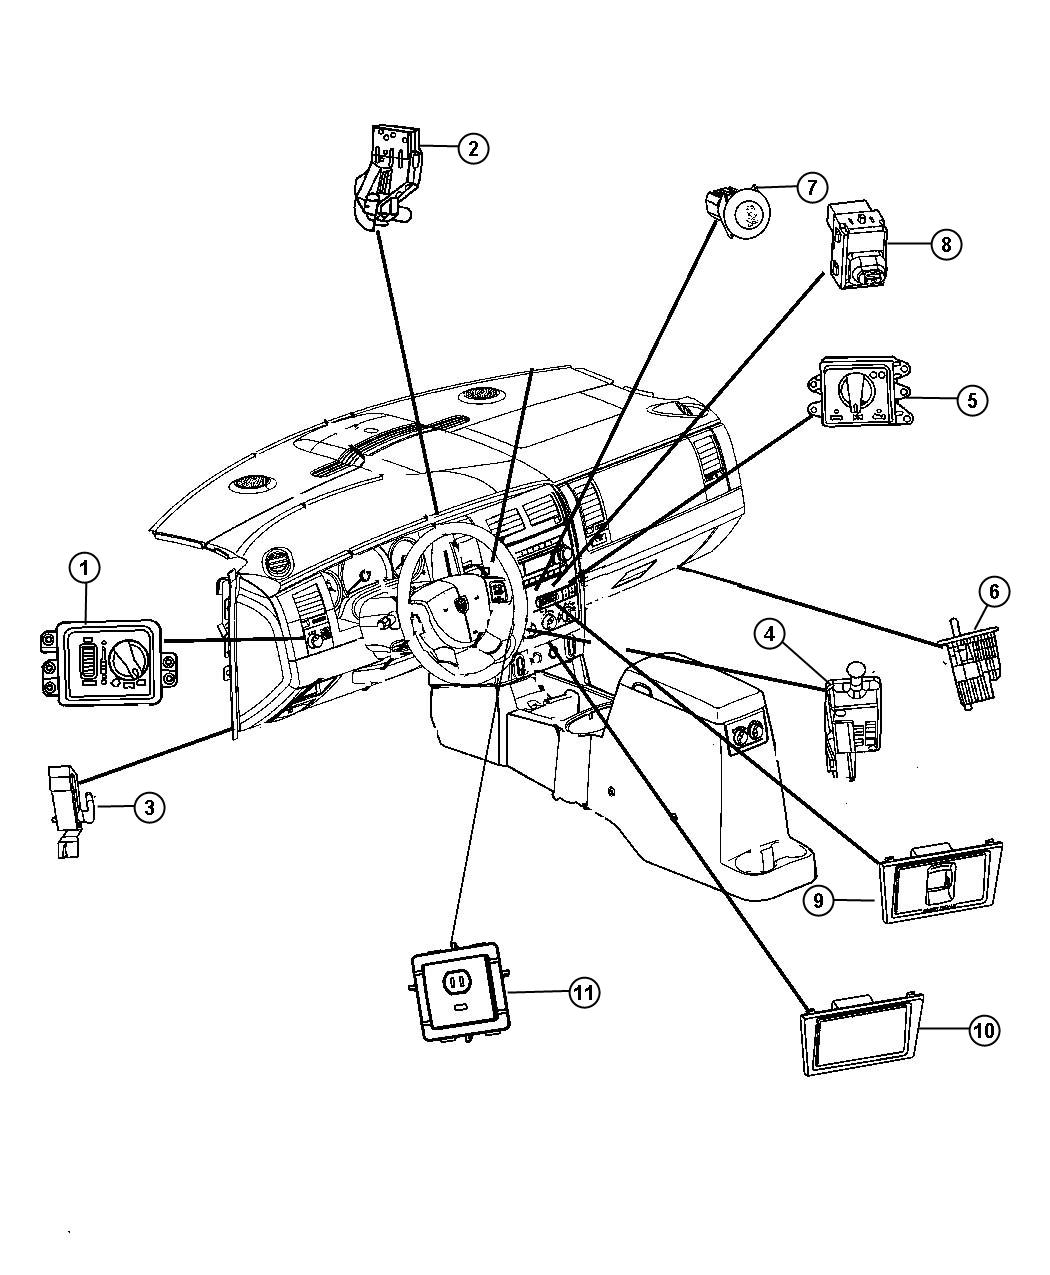 Fuse Box Diagram For Dodge Durango Dodge Wiring